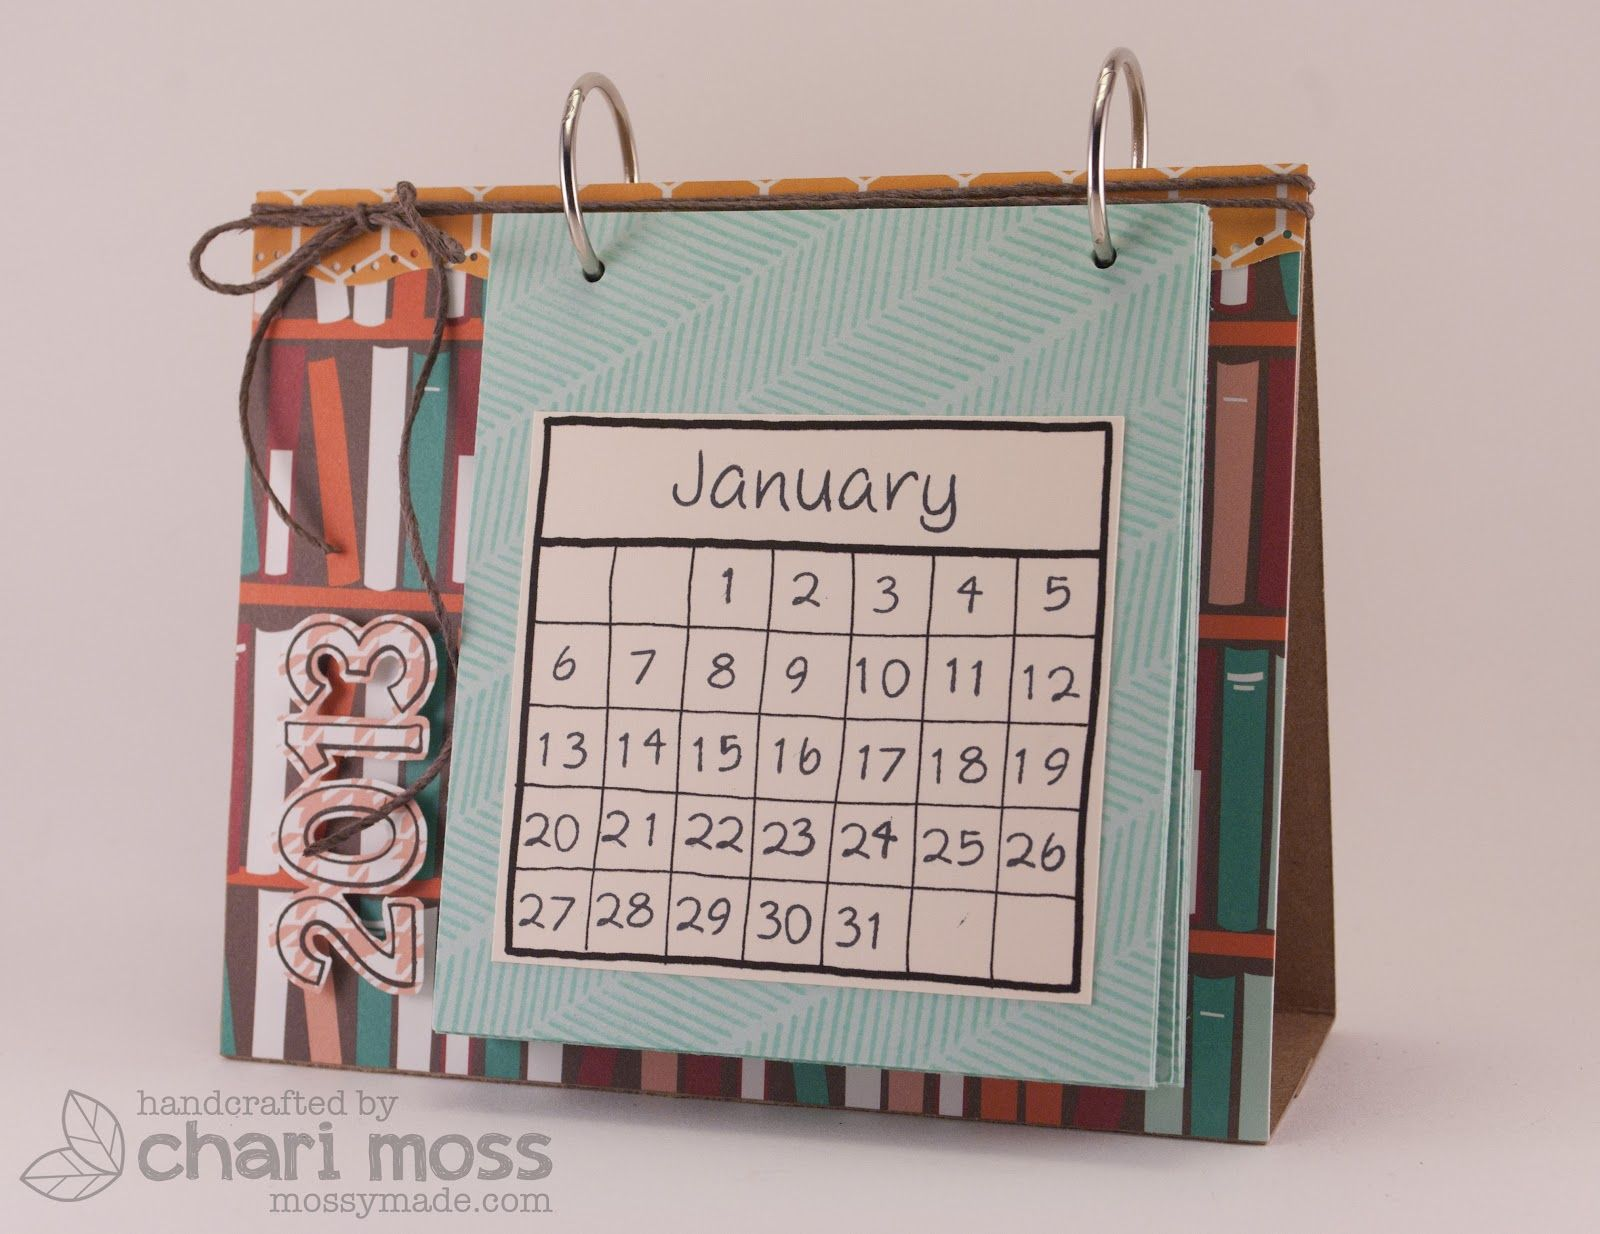 Chari S Desktop Calendar So Cute And Great Ideas In Here